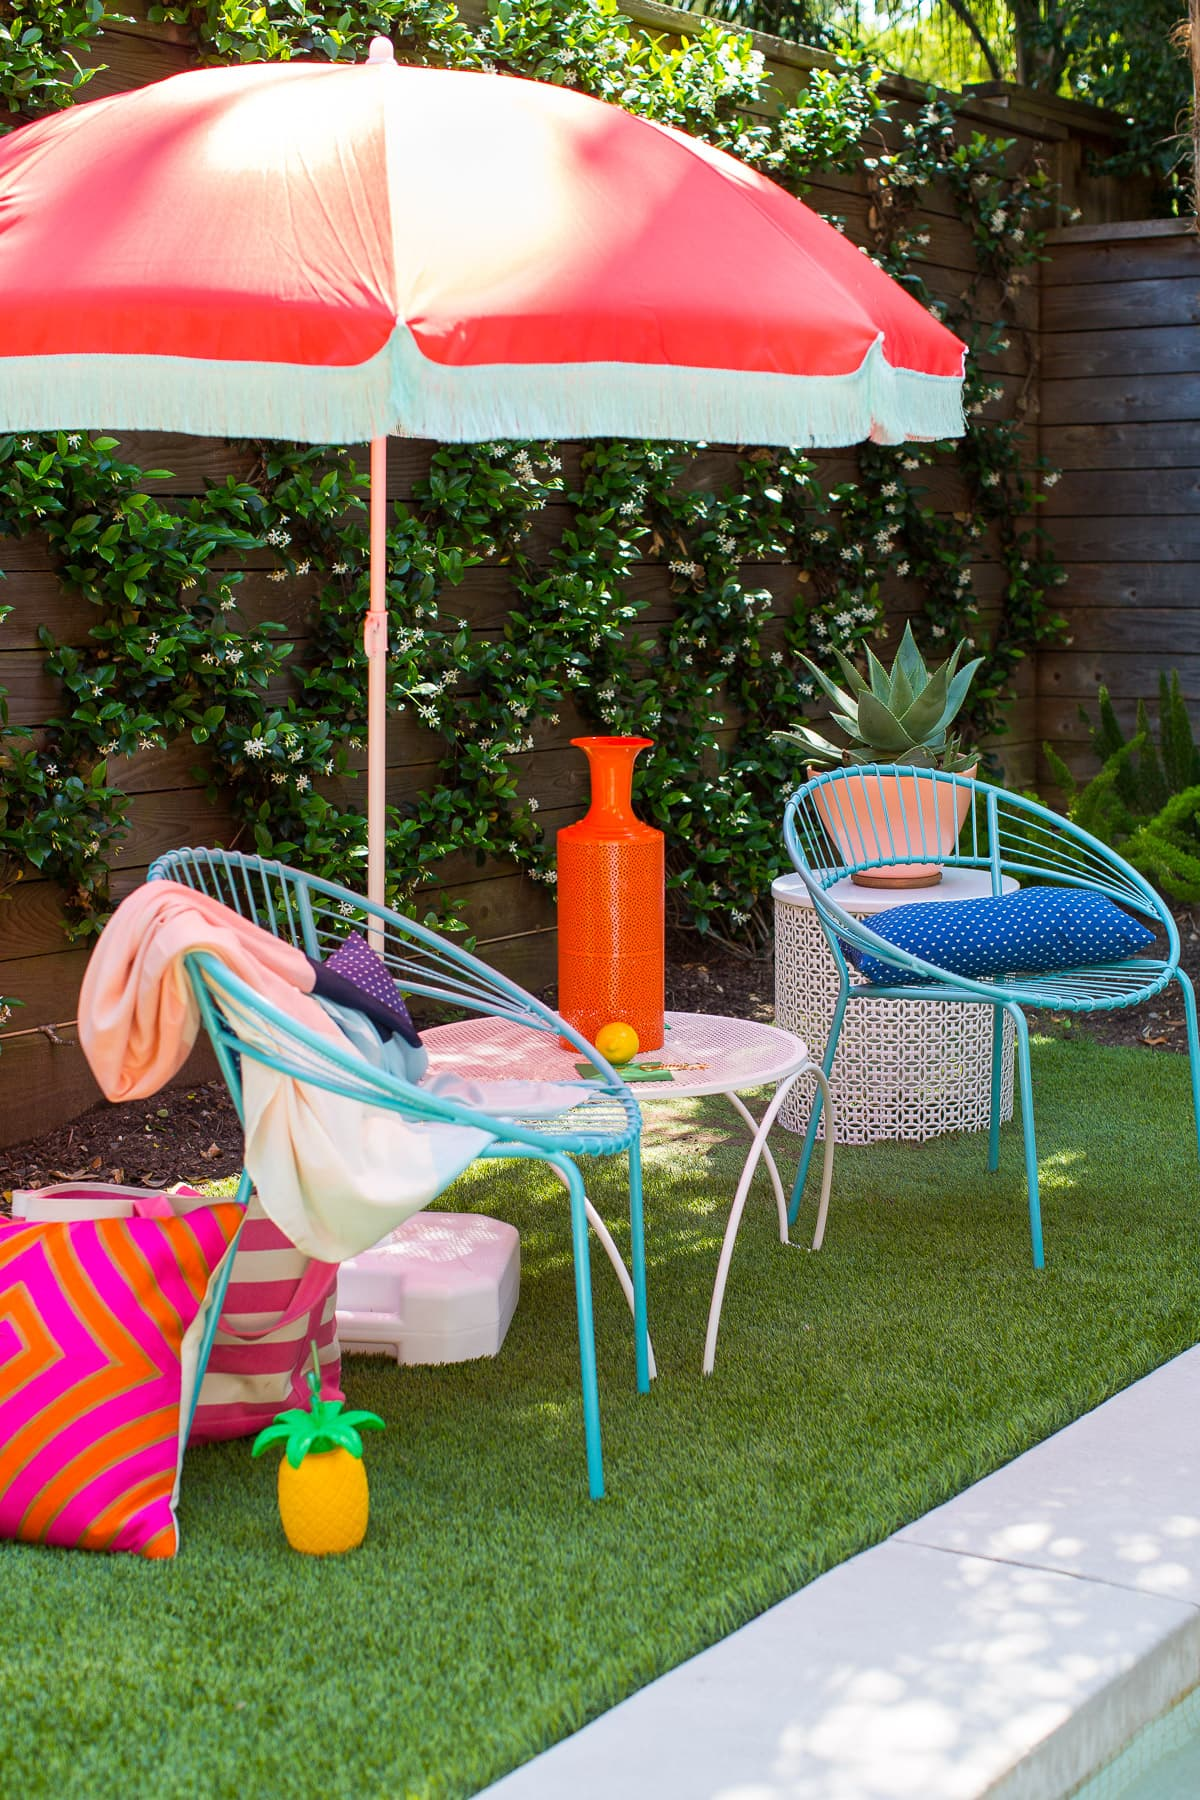 The cutest DIY retro beach umbrella for under $100 by Sugar and Cloth! - houston blogger - summer